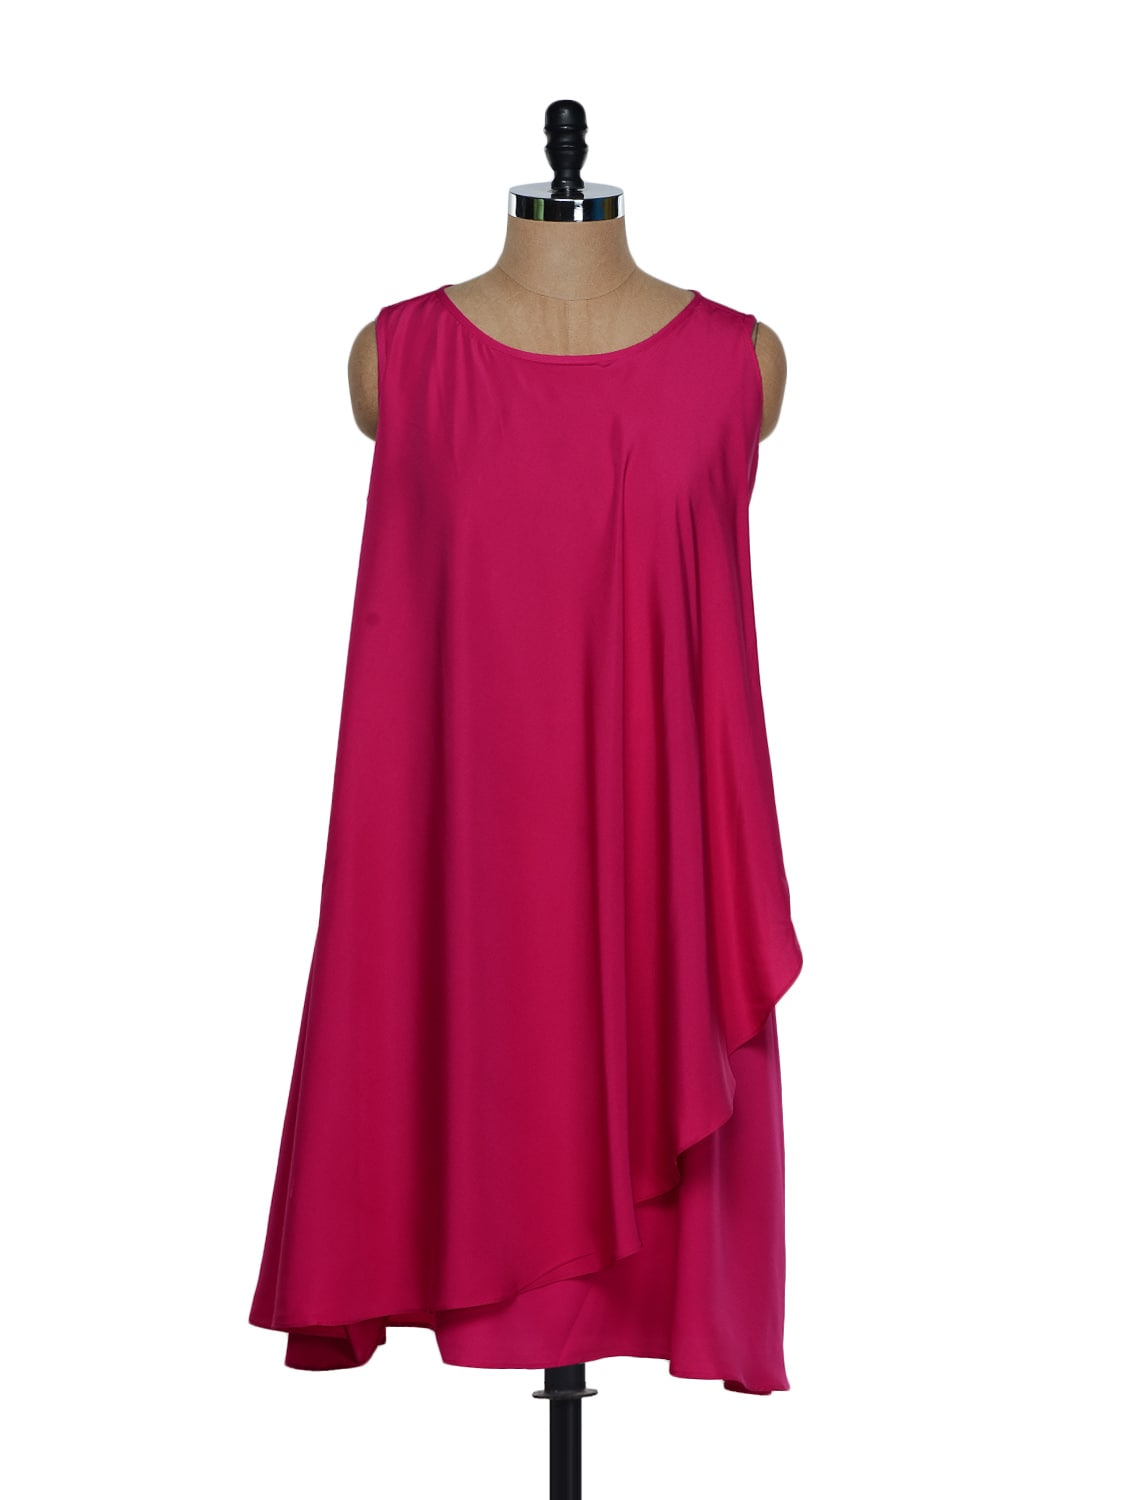 Fuchsia Pink Asymmetrical Dress - Eavan